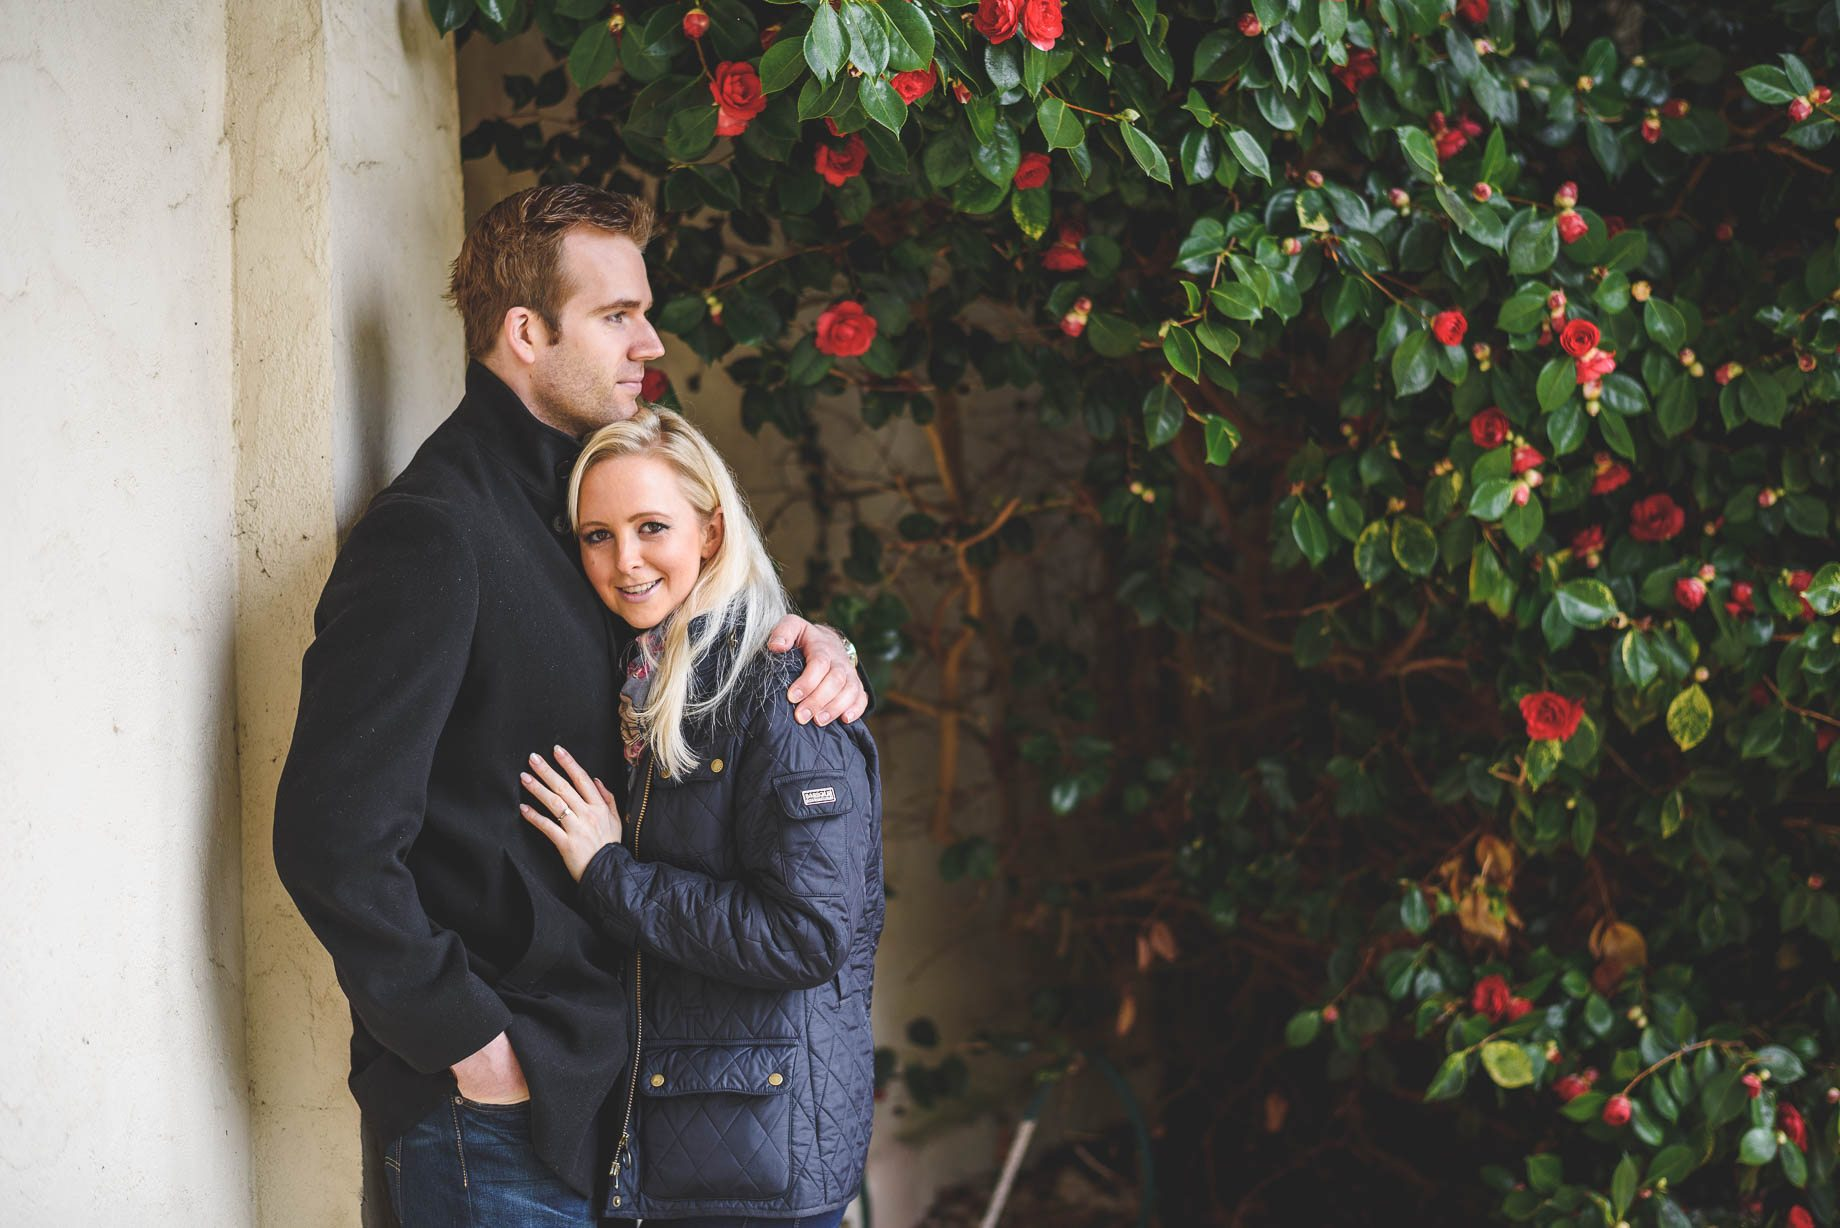 Hampshire wedding photography - Rozie and Tom (19 of 38)